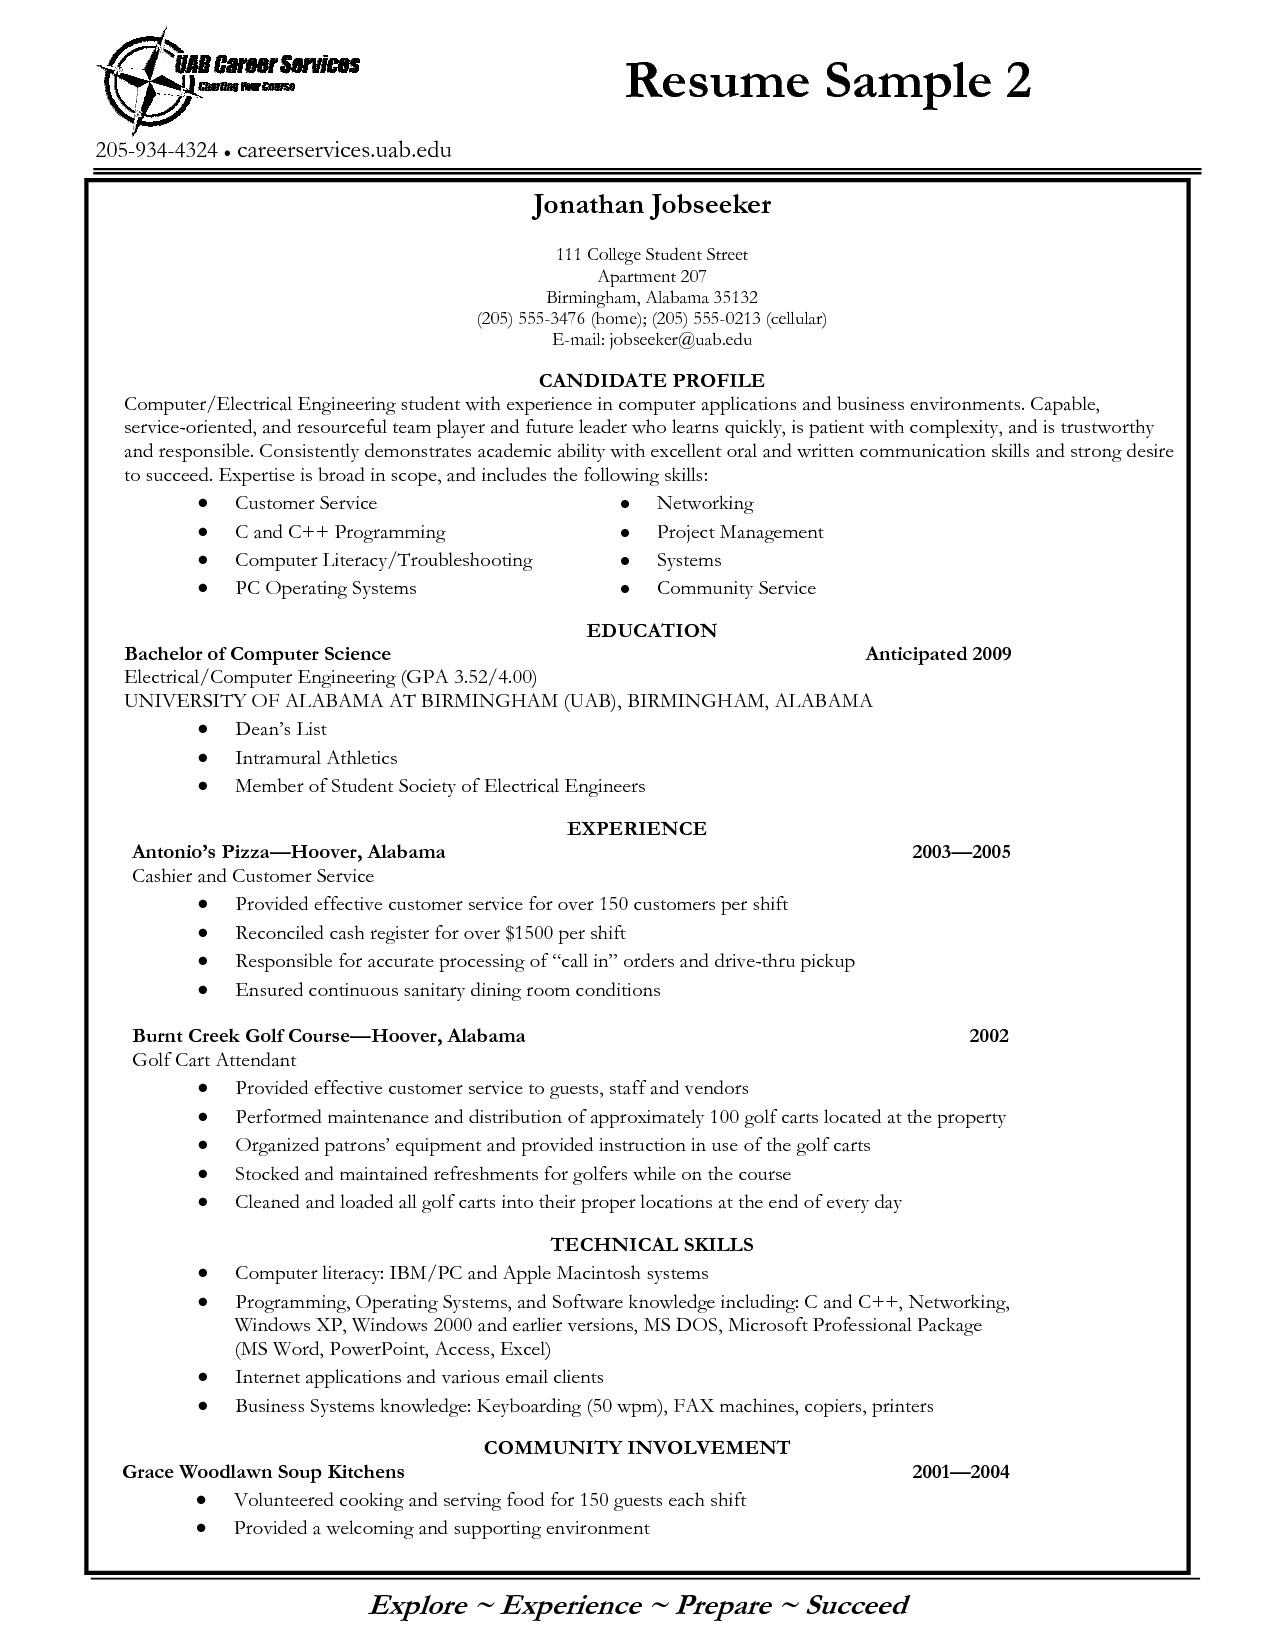 resume examples for high school students applying to collegeresume examples job letter sample. Resume Example. Resume CV Cover Letter